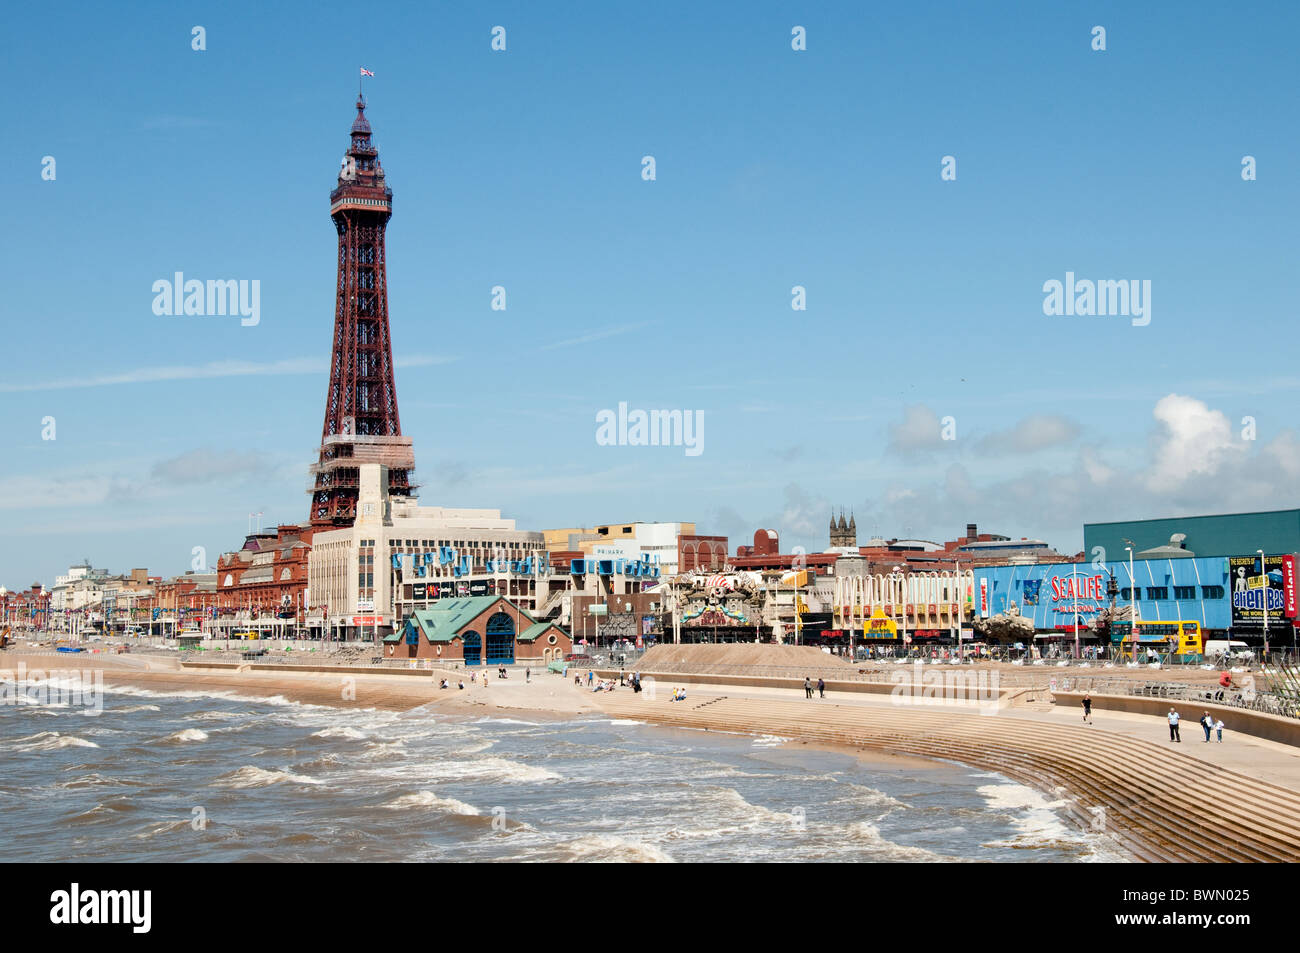 Blackpool the town and beach on the coast of Lancashire in Northern England - Stock Image